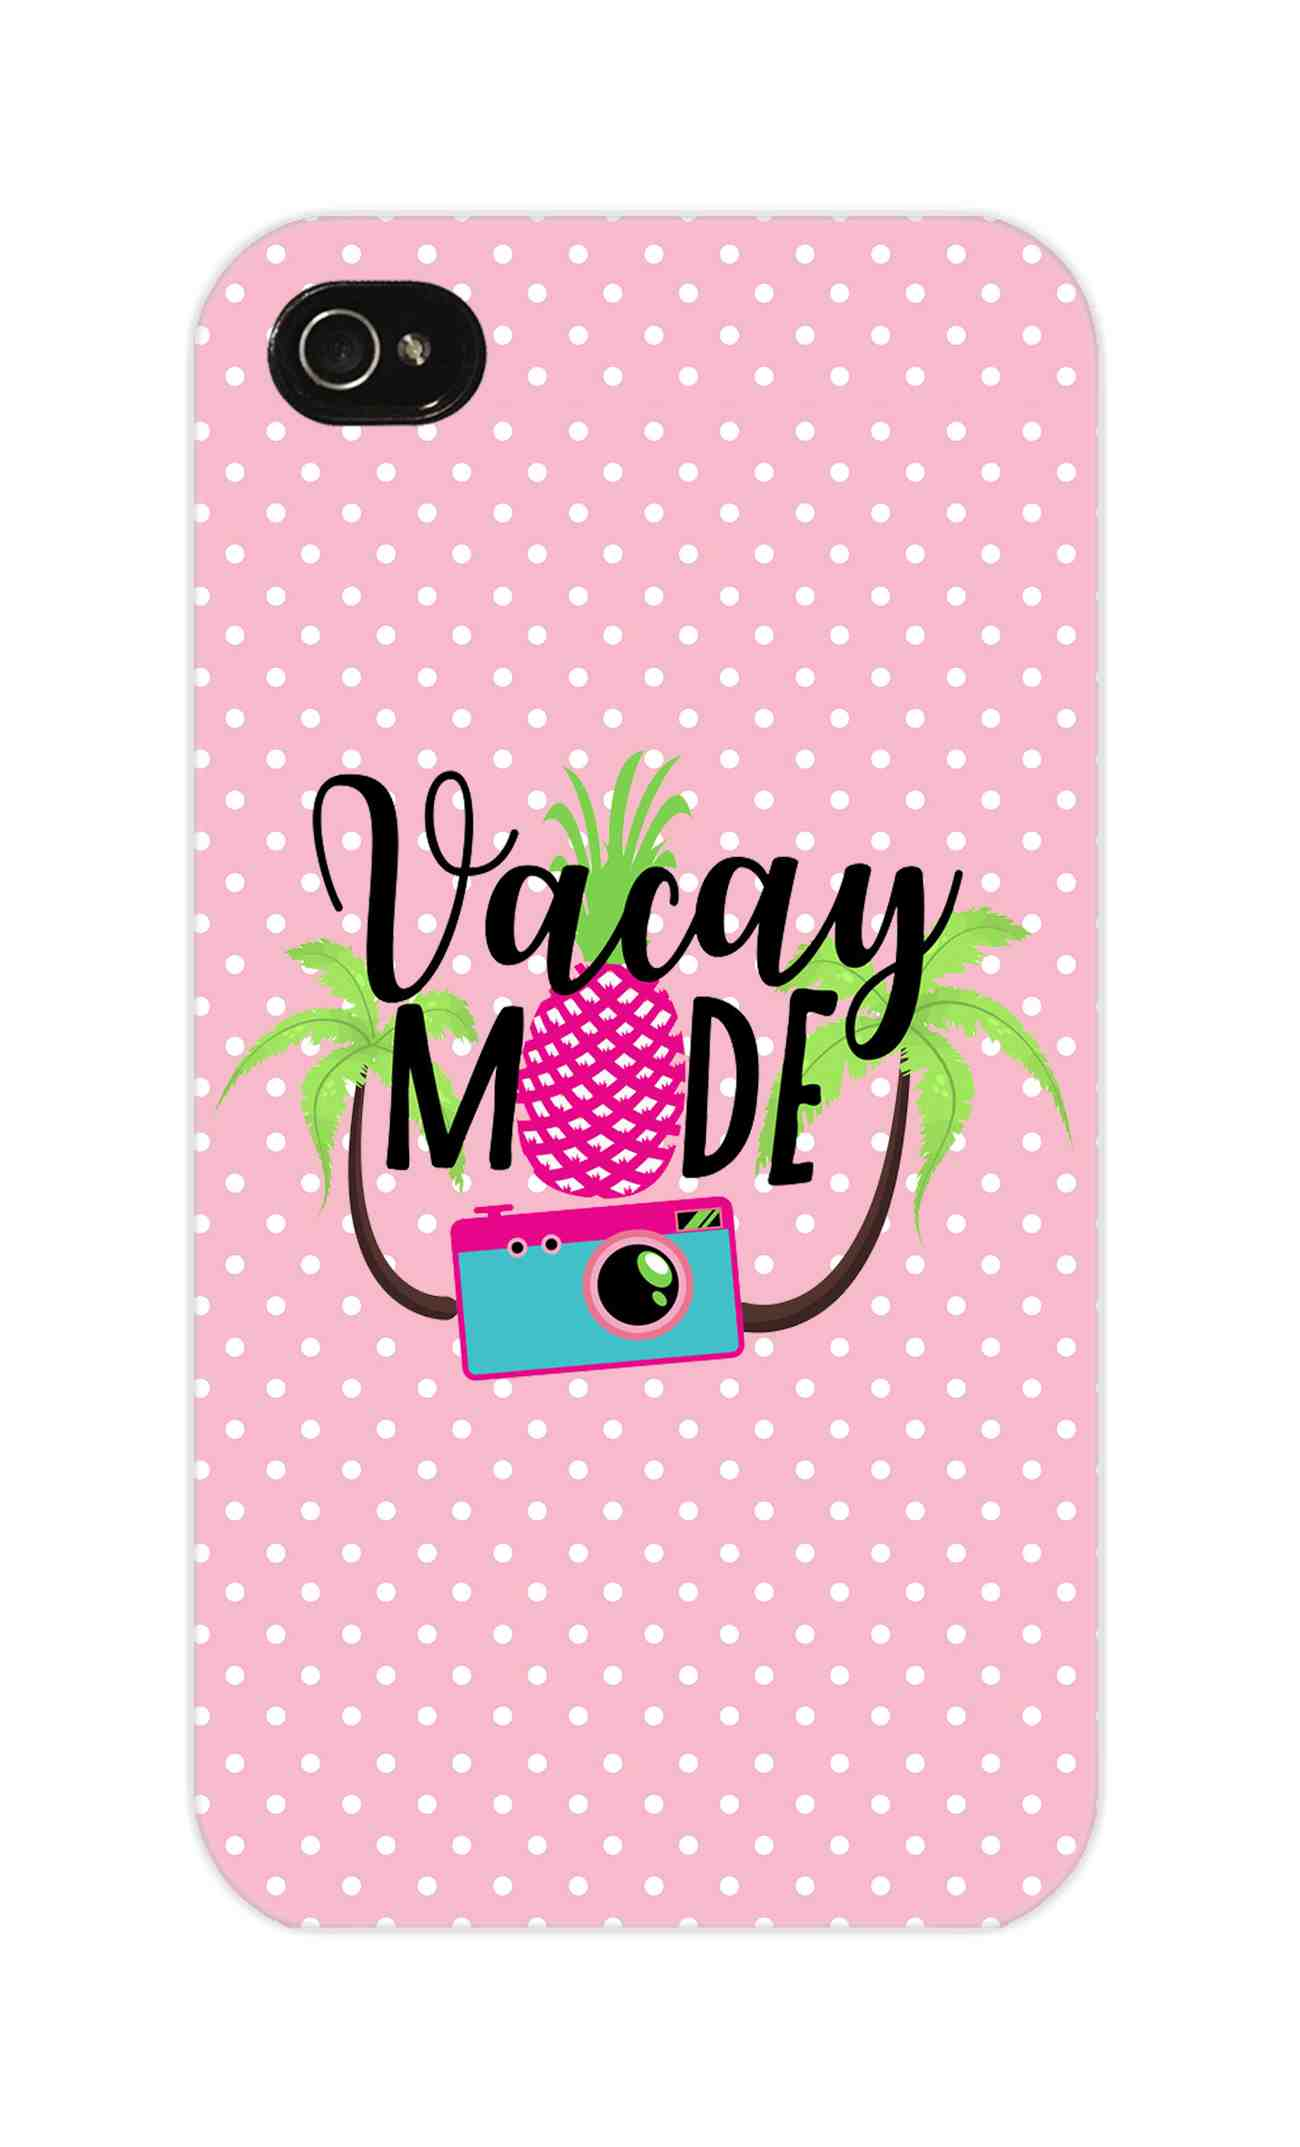 Vacay Mode With Cute White Dots Typography iPhone 4 Mobile Cover Case - MADANYU